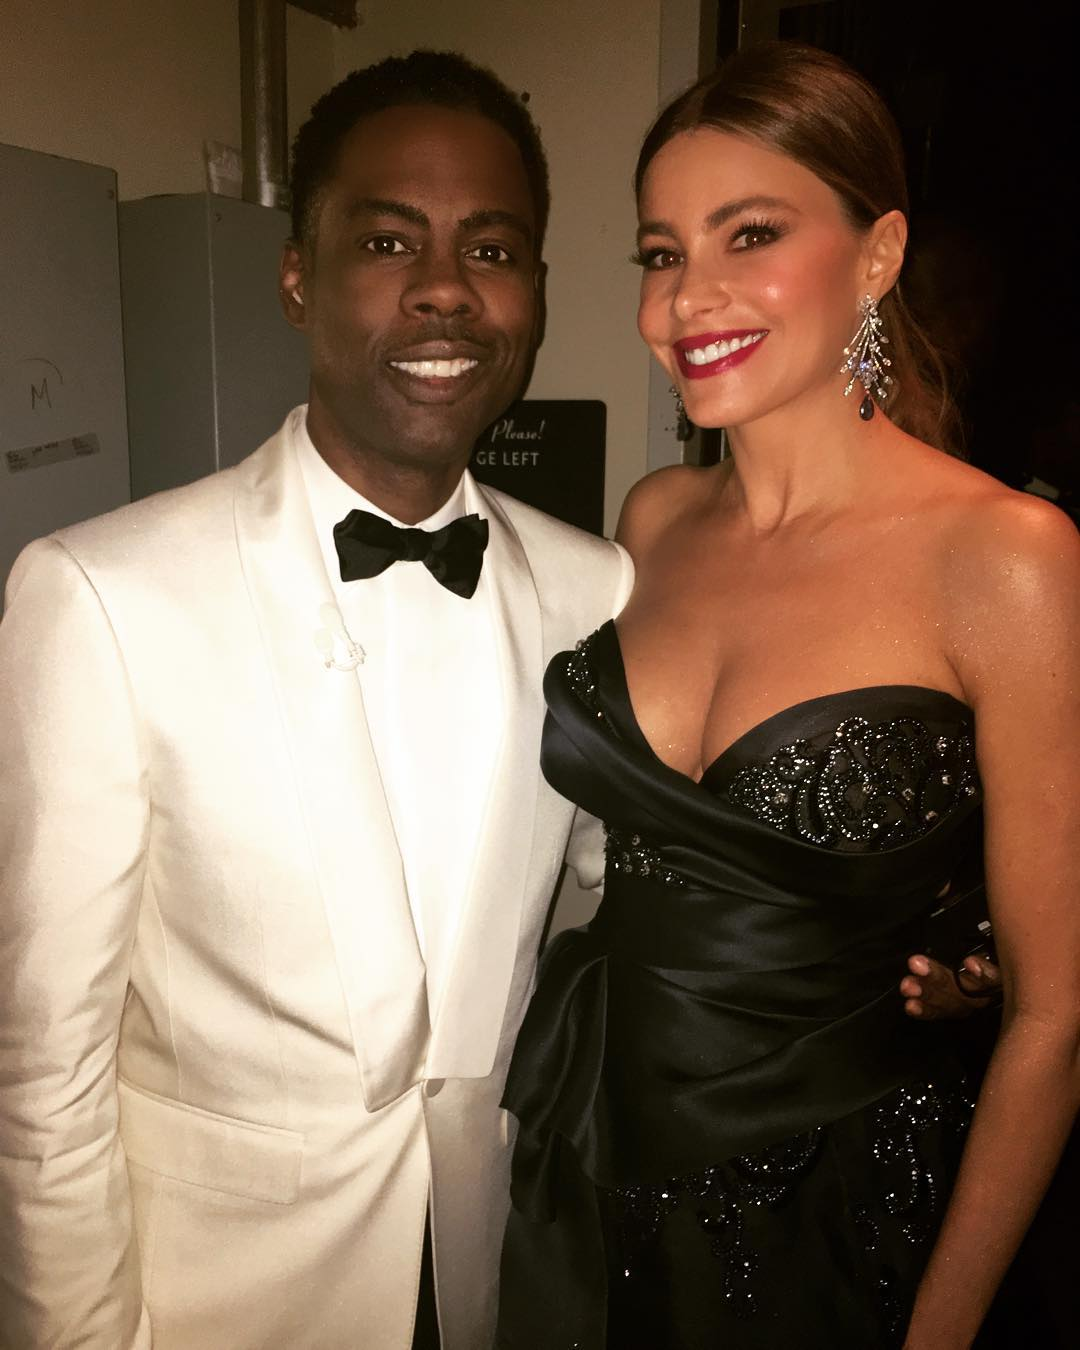 Dear Chris Rock, did you forget about Latinos and all OTHER minorities?